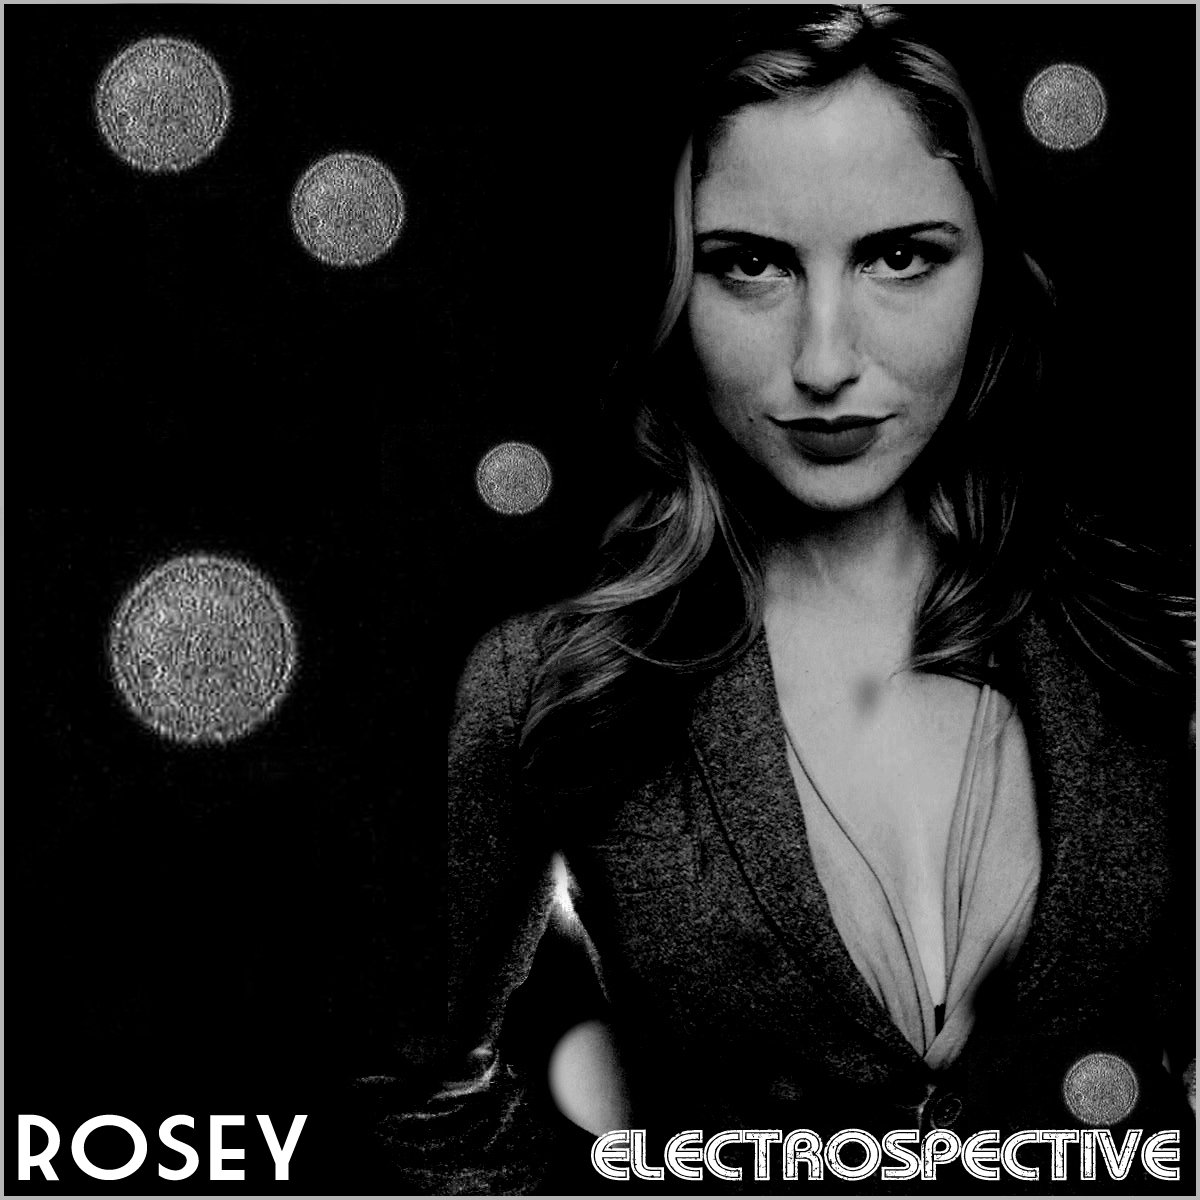 rosey electronic record Electrospective featuring roseymusis on music production songs with govinda, beat ventriloquists, carmen rizzo, bruno guez, david wilder